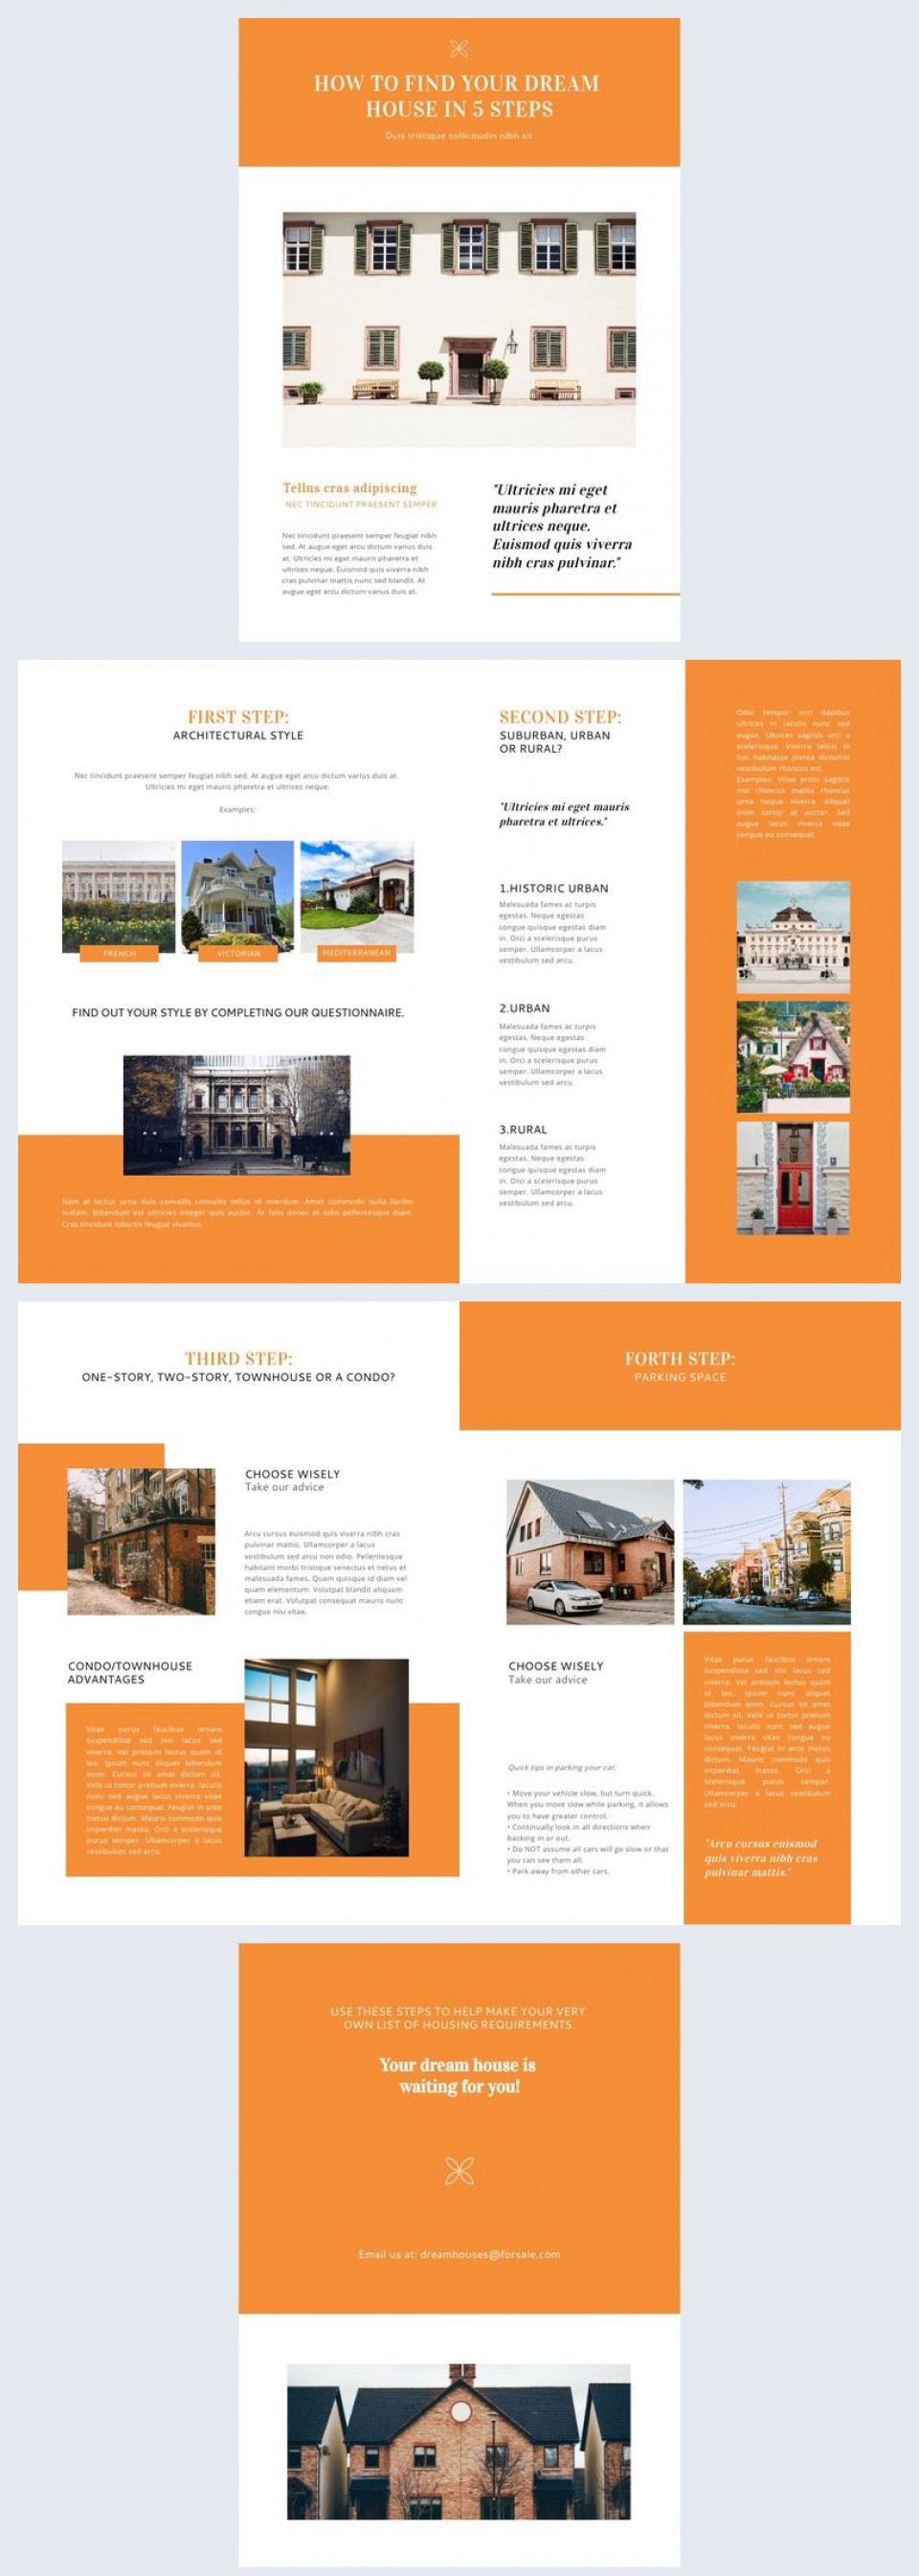 009 Fantastic Real Estate Newsletter Template Picture  Free Mailchimp960